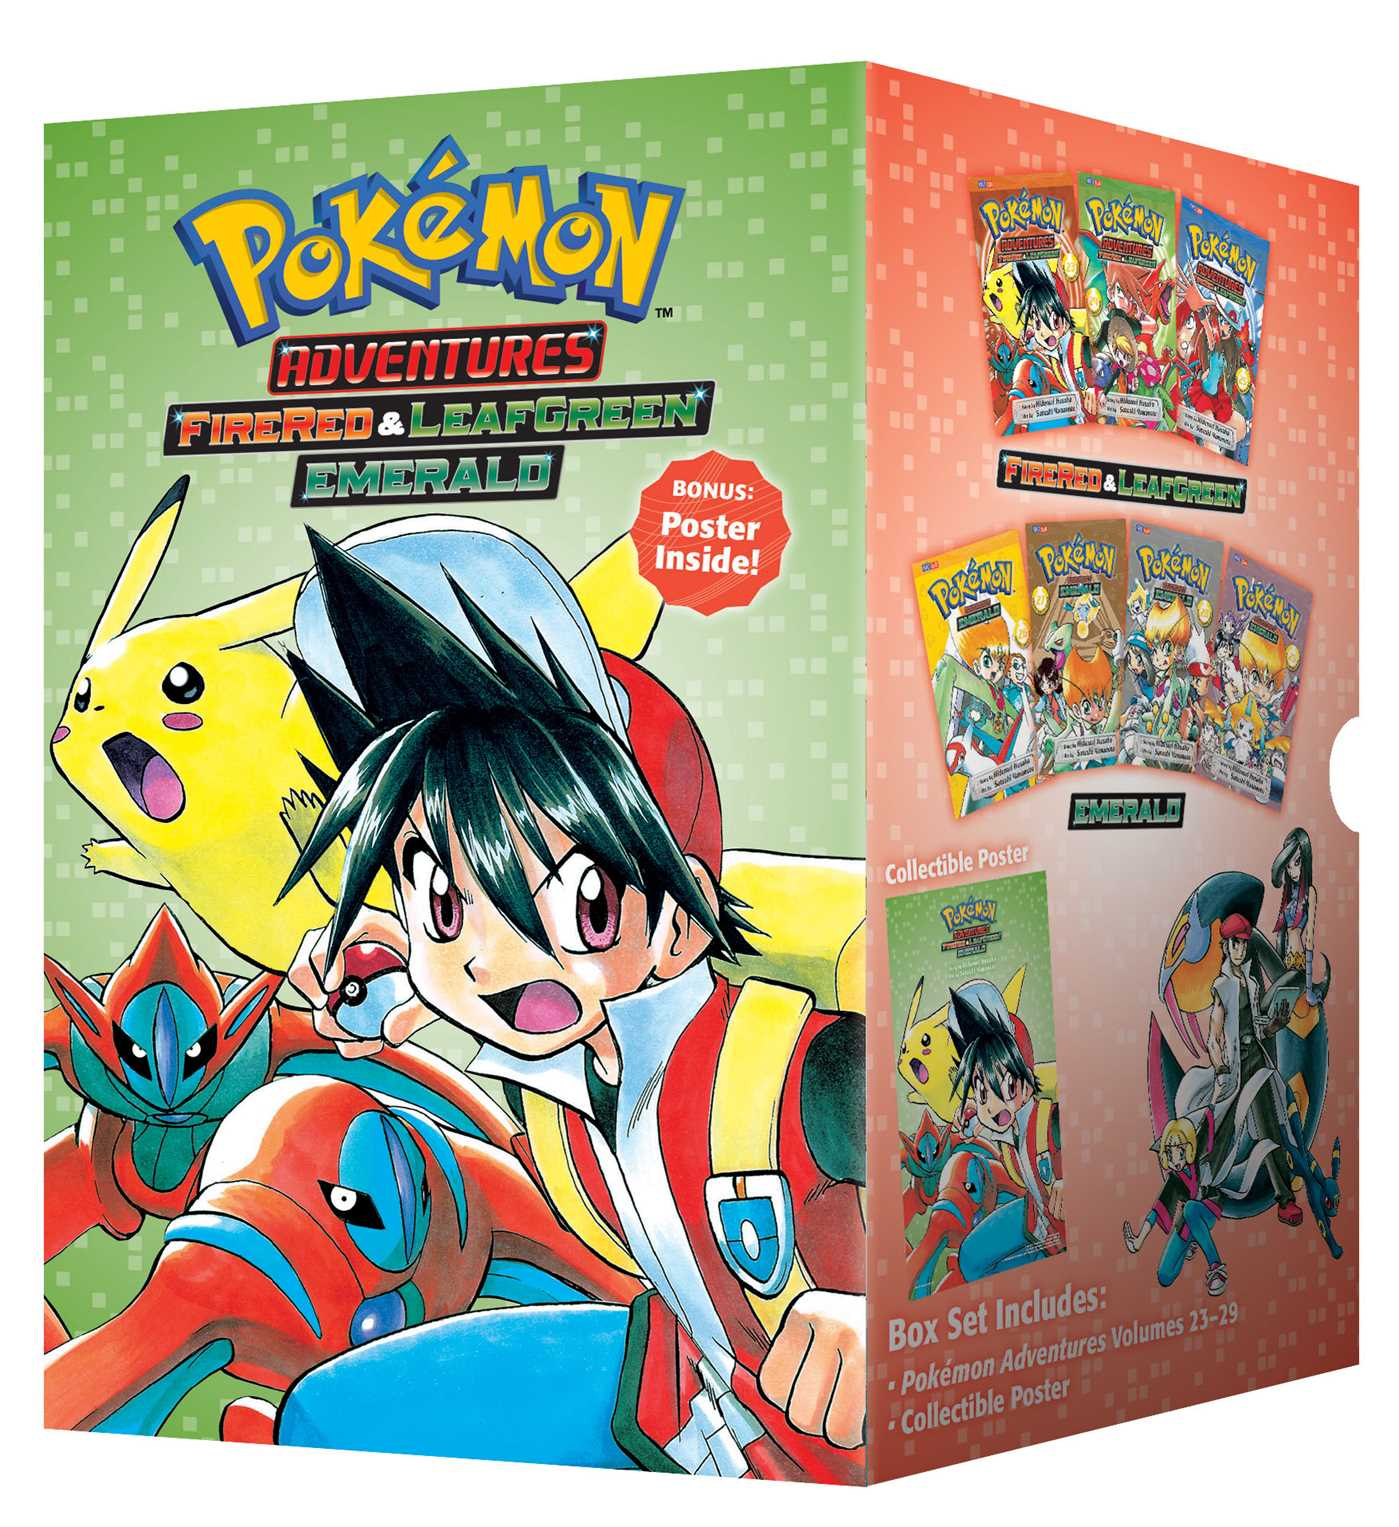 Pokémon Adventures Fire Red & Leaf Green / Emerald Box Set : Includes Volumes 23-29